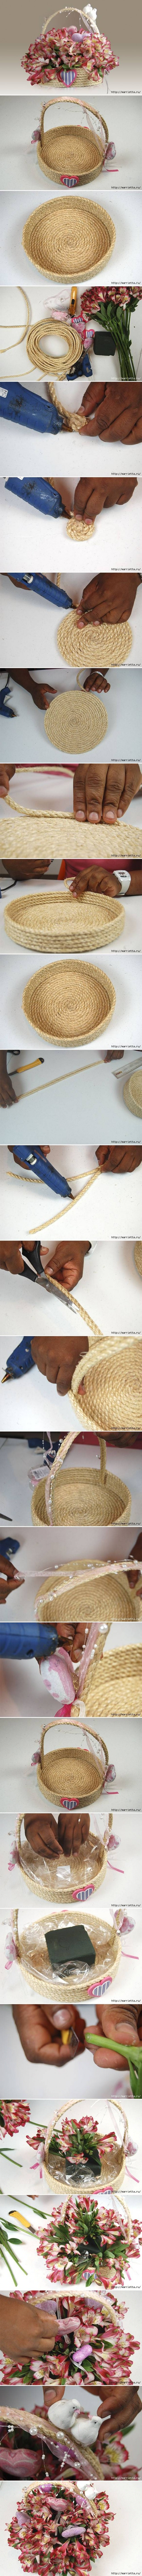 How to make Rope Gift Basket step by step DIY tutorial instructions